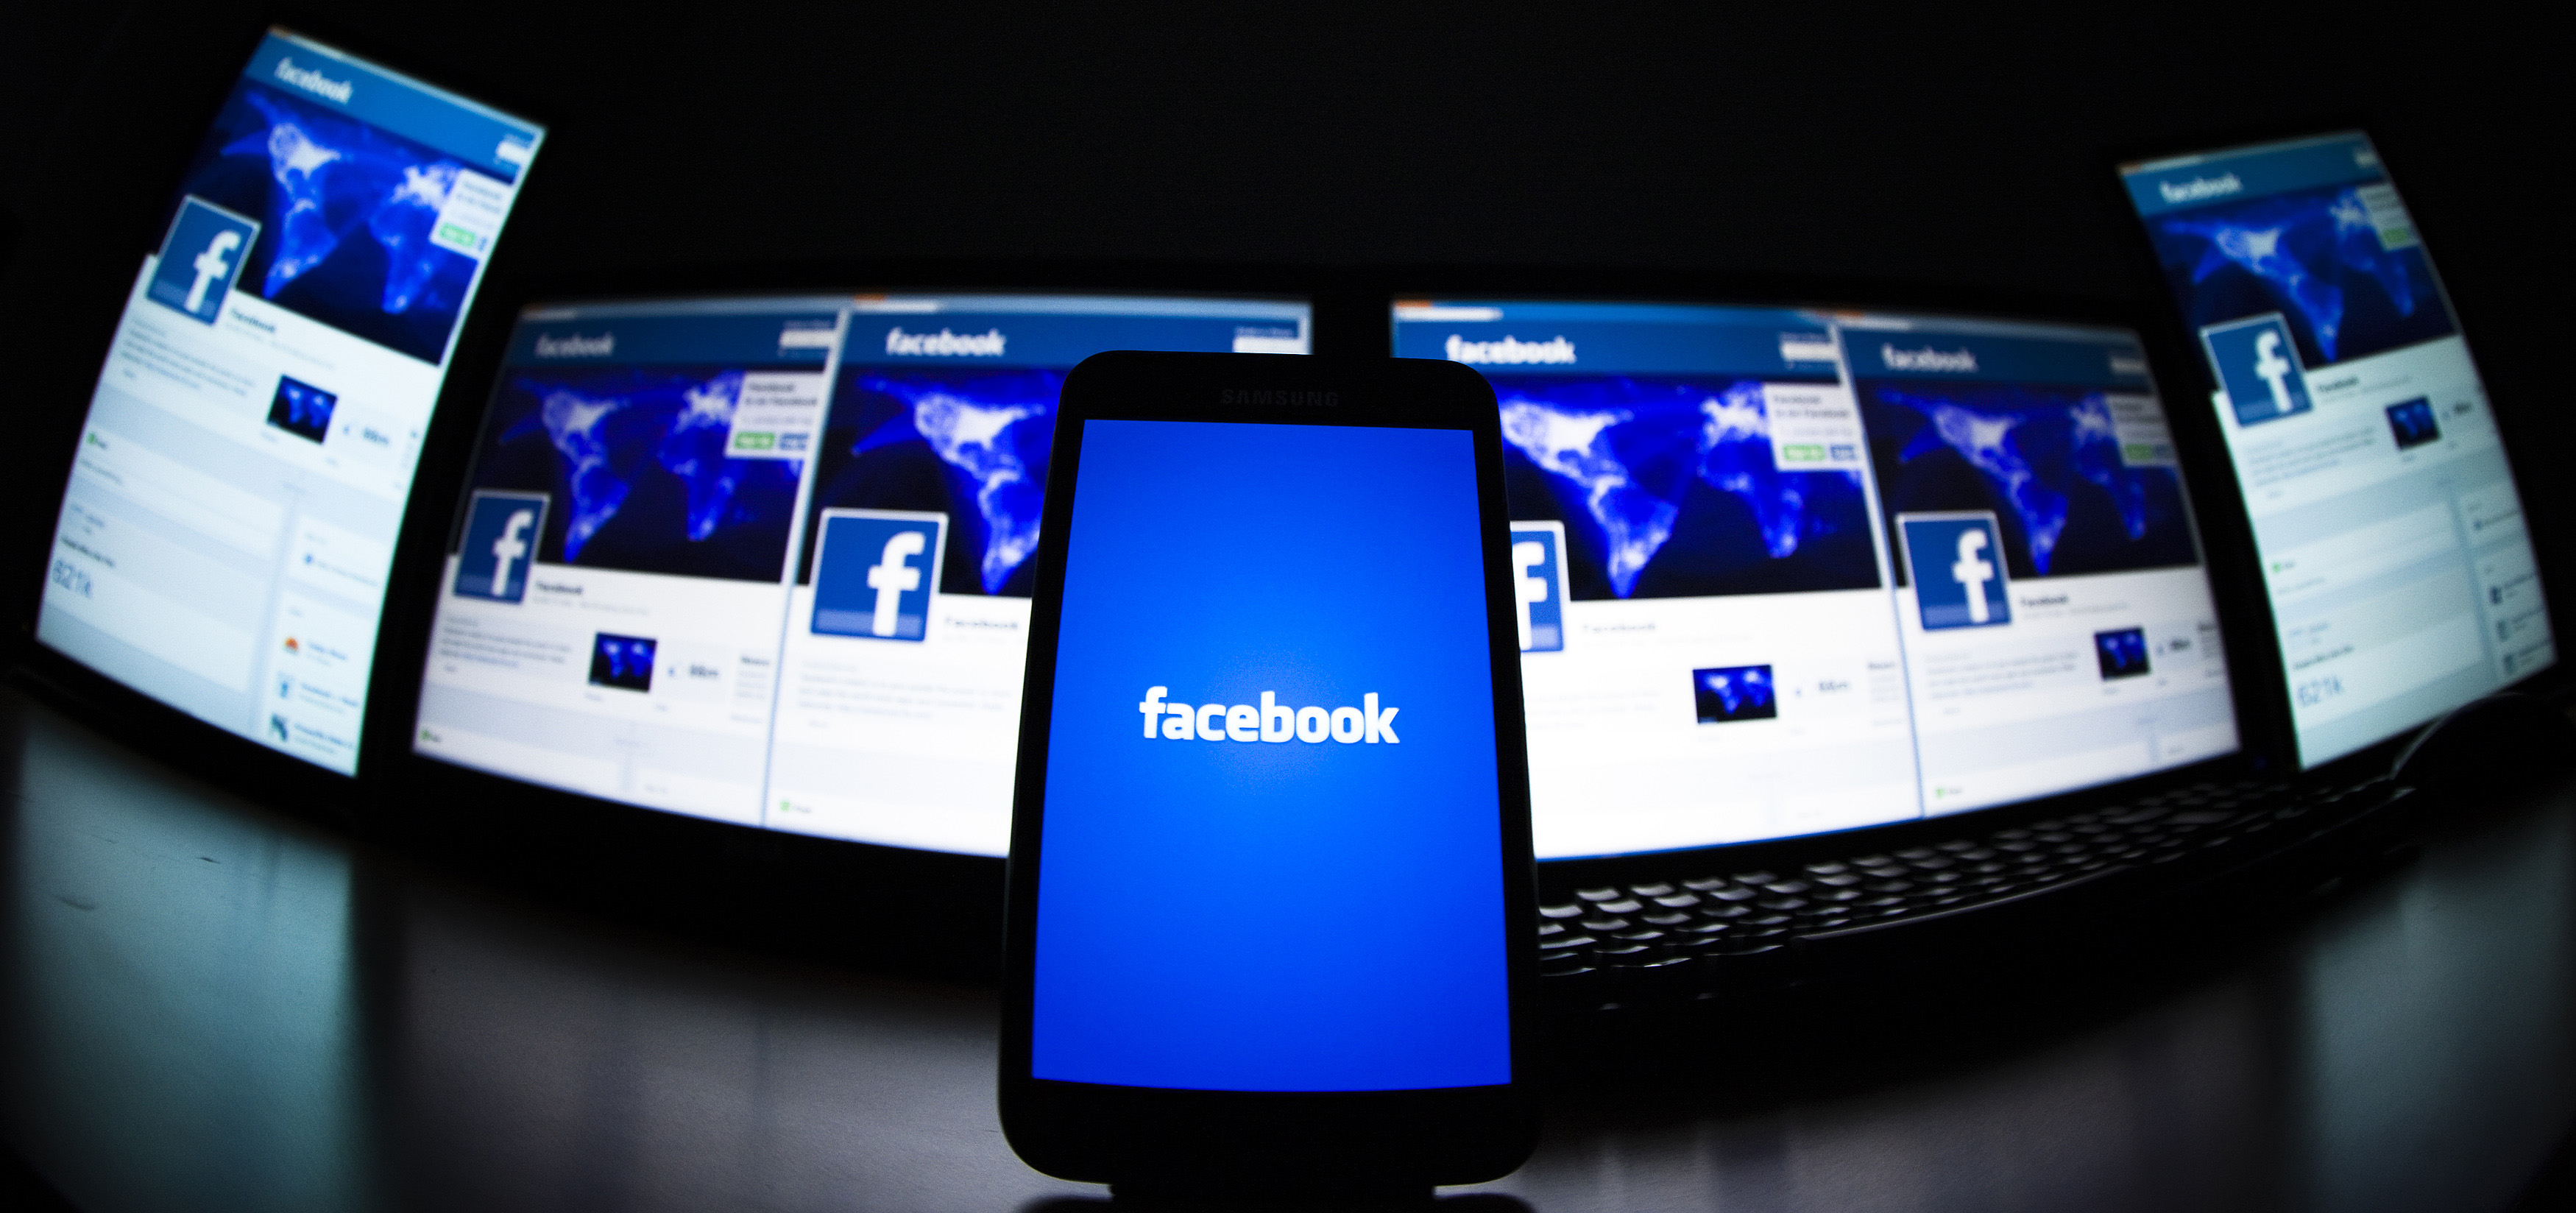 The loading screen of the Facebook application on a mobile phone is seen in this photo illustration taken in Lavigny May 16, 2012. Facebook Inc increased the size of its initial public offering by almost 25 percent, and could raise as much as $16 billion as strong investor demand for a share of the No.1 social network trumps debate about its long-term potential to make money. Facebook, founded eight years ago by Mark Zuckerberg in a Harvard dorm room, said on Wednesday it will add about 84 million shares to its IPO, floating about 421 million shares in an offering expected to be priced on Thursday. REUTERS/Valentin Flauraud (SWITZERLAND - Tags: BUSINESS SCIENCE TECHNOLOGY SOCIETY TPX IMAGES OF THE DAY) - RTR325LC